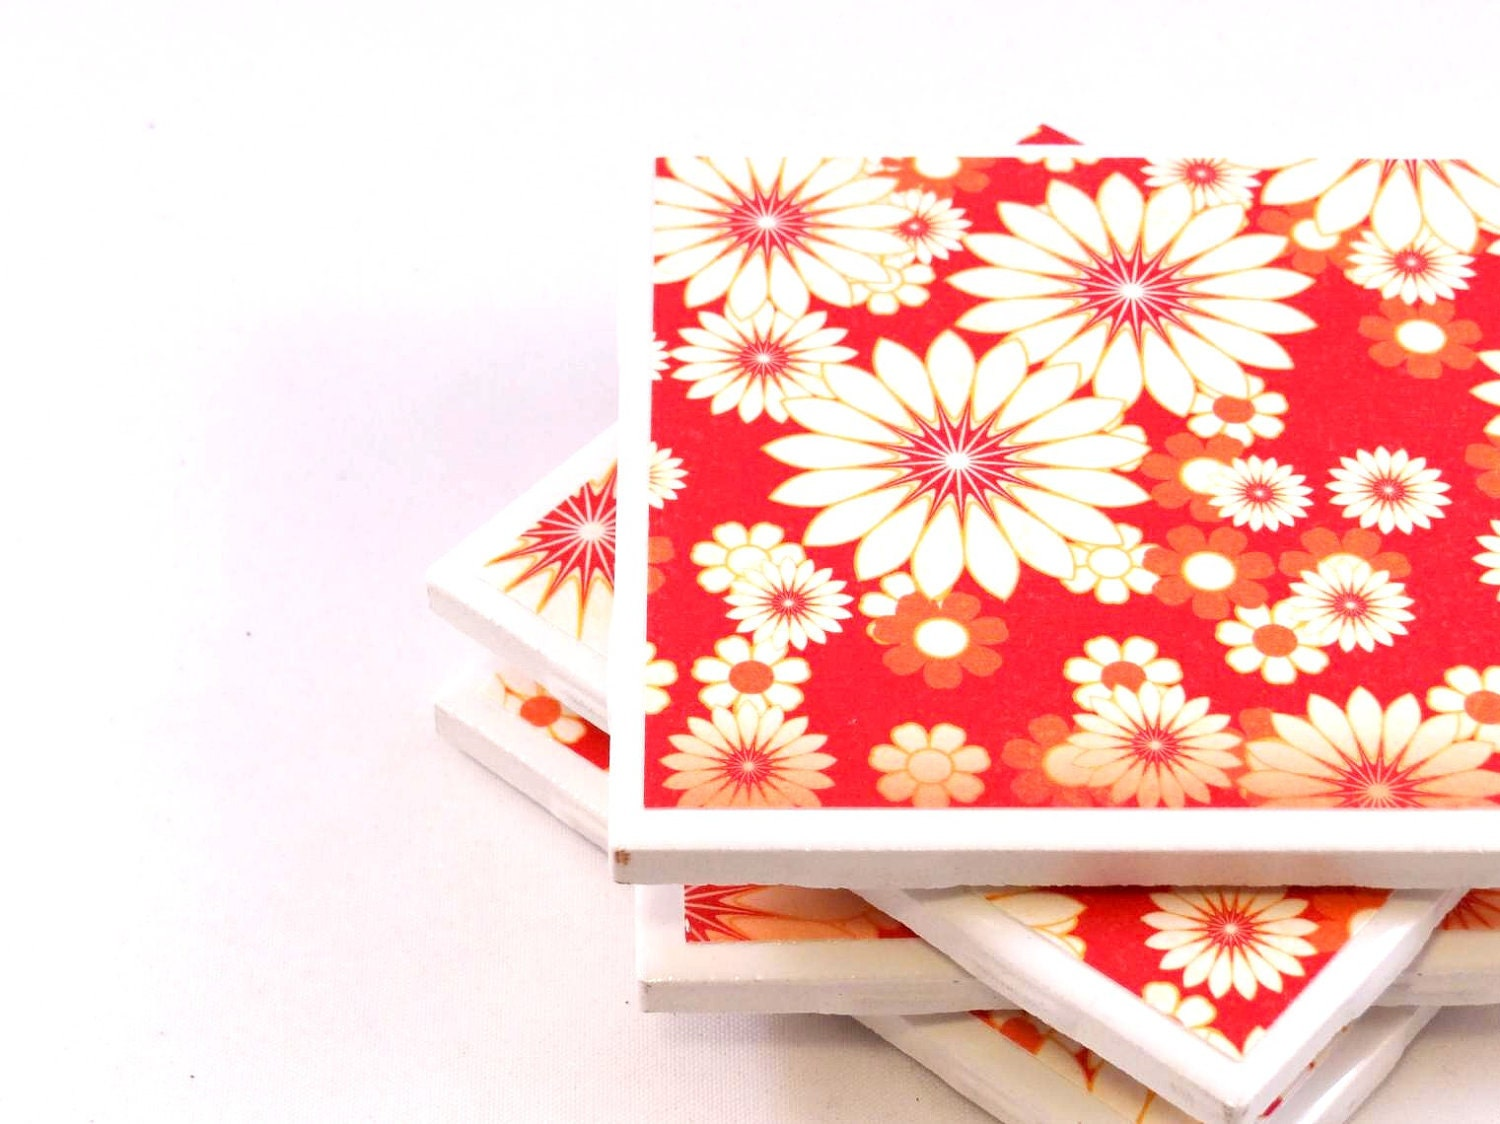 Ceramic Tile Coasters - Red, Orange and White Floral - Set of 4 - littlecoastergnome